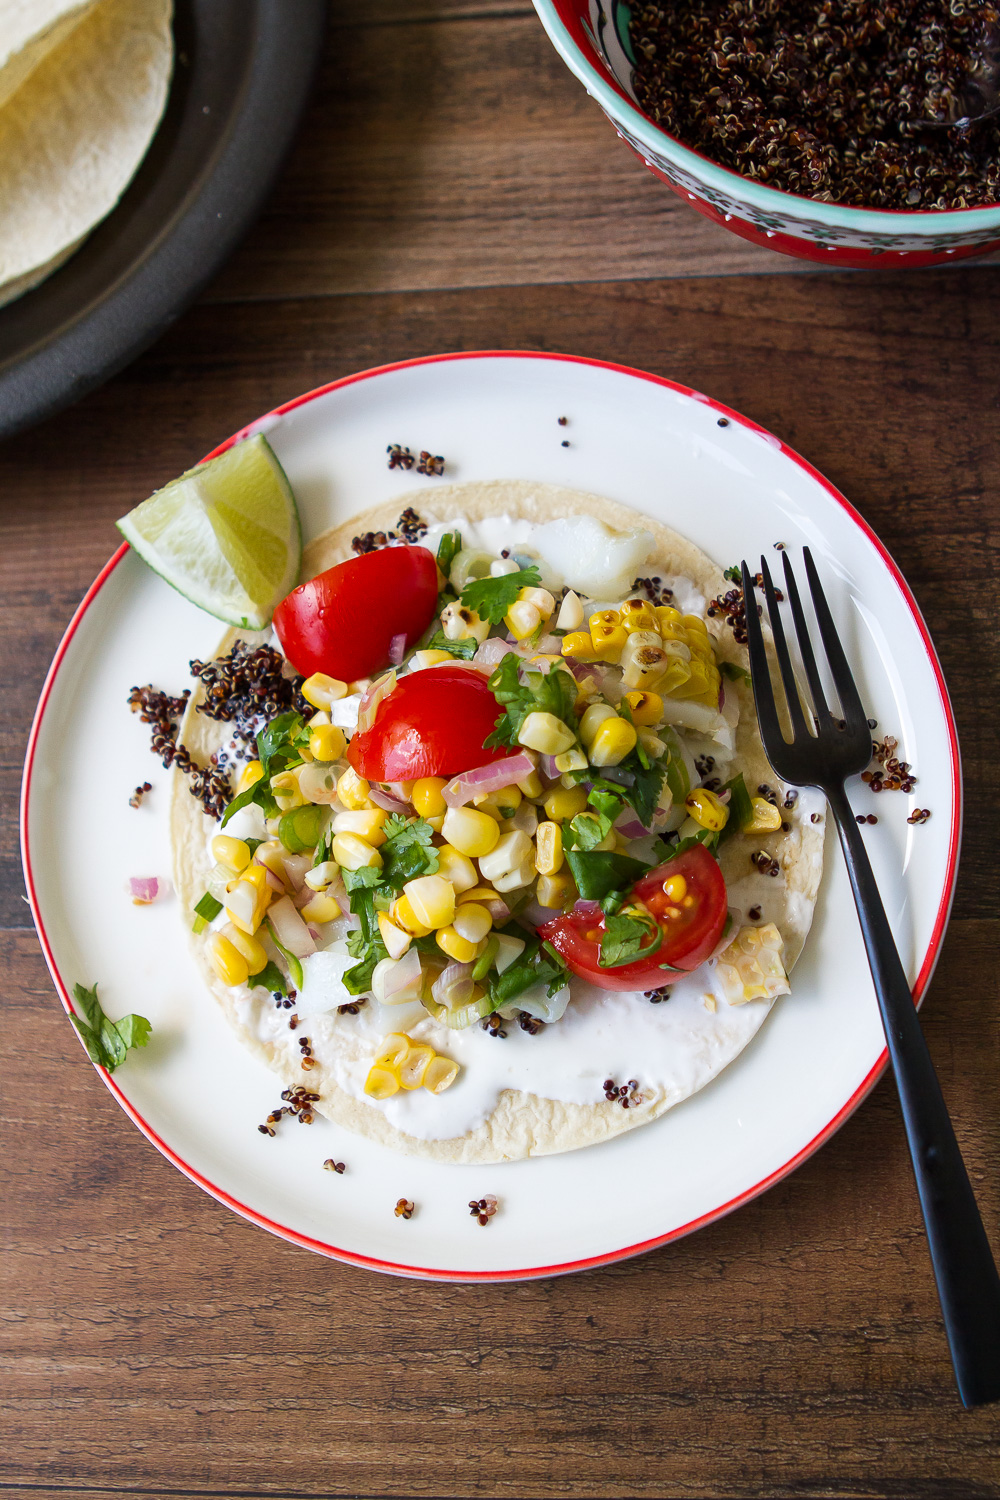 FISH TACOS WITH BLACK QUINOA AND SWEET CORN SALSA